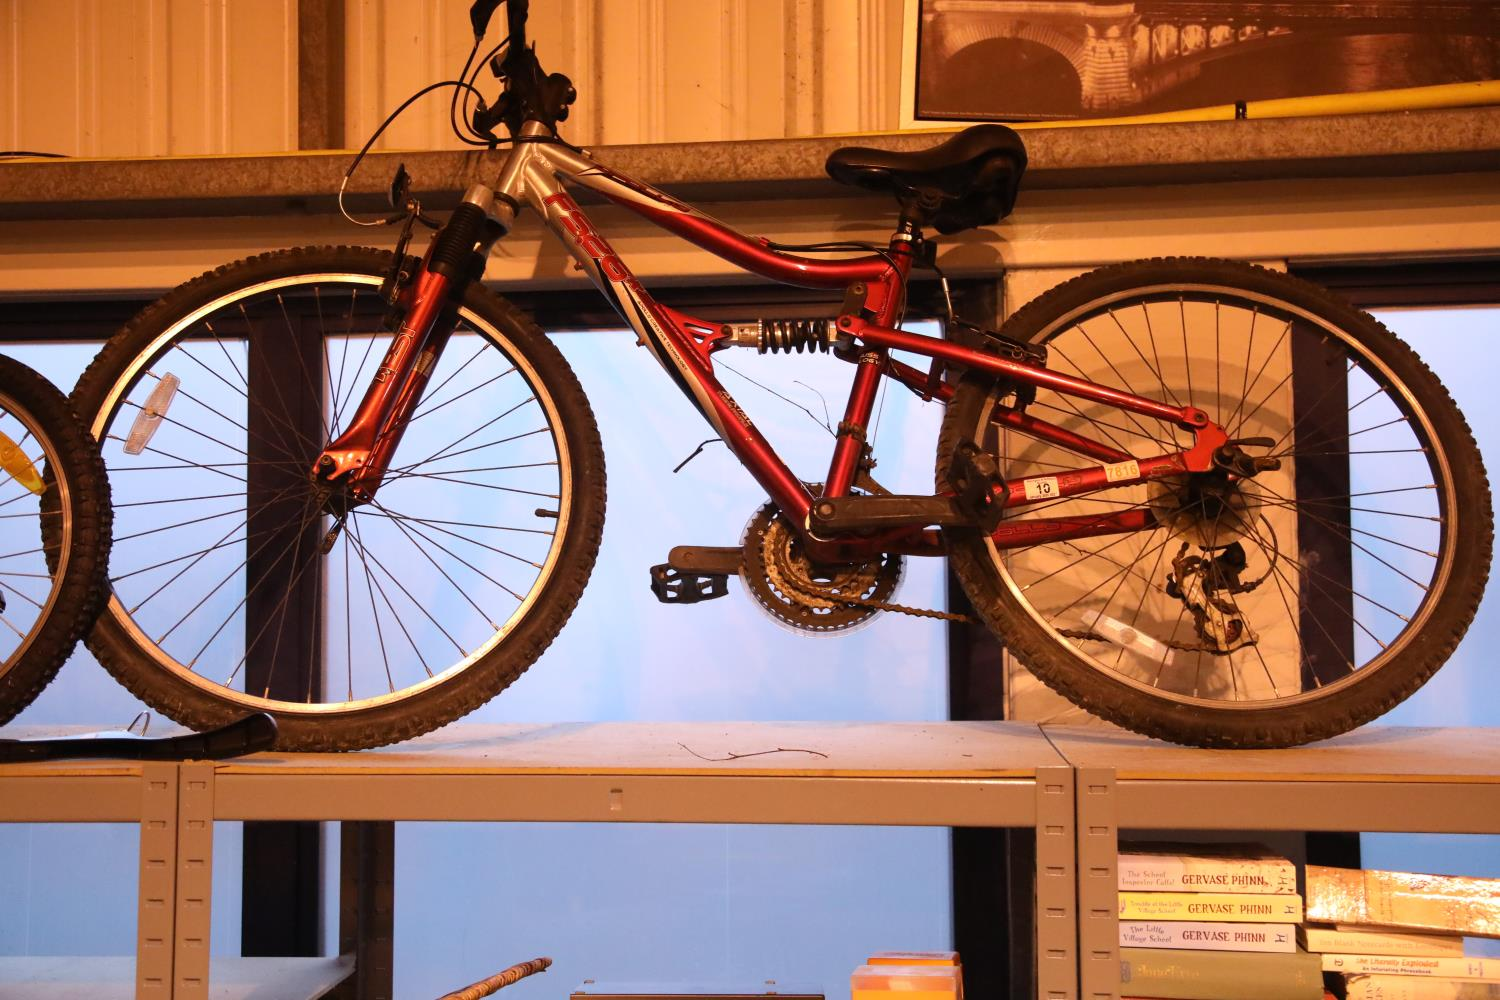 """Apollo F526 dual suspension 21 speed mountain bike with 16"""" frame. Not available for in-house P&P,"""